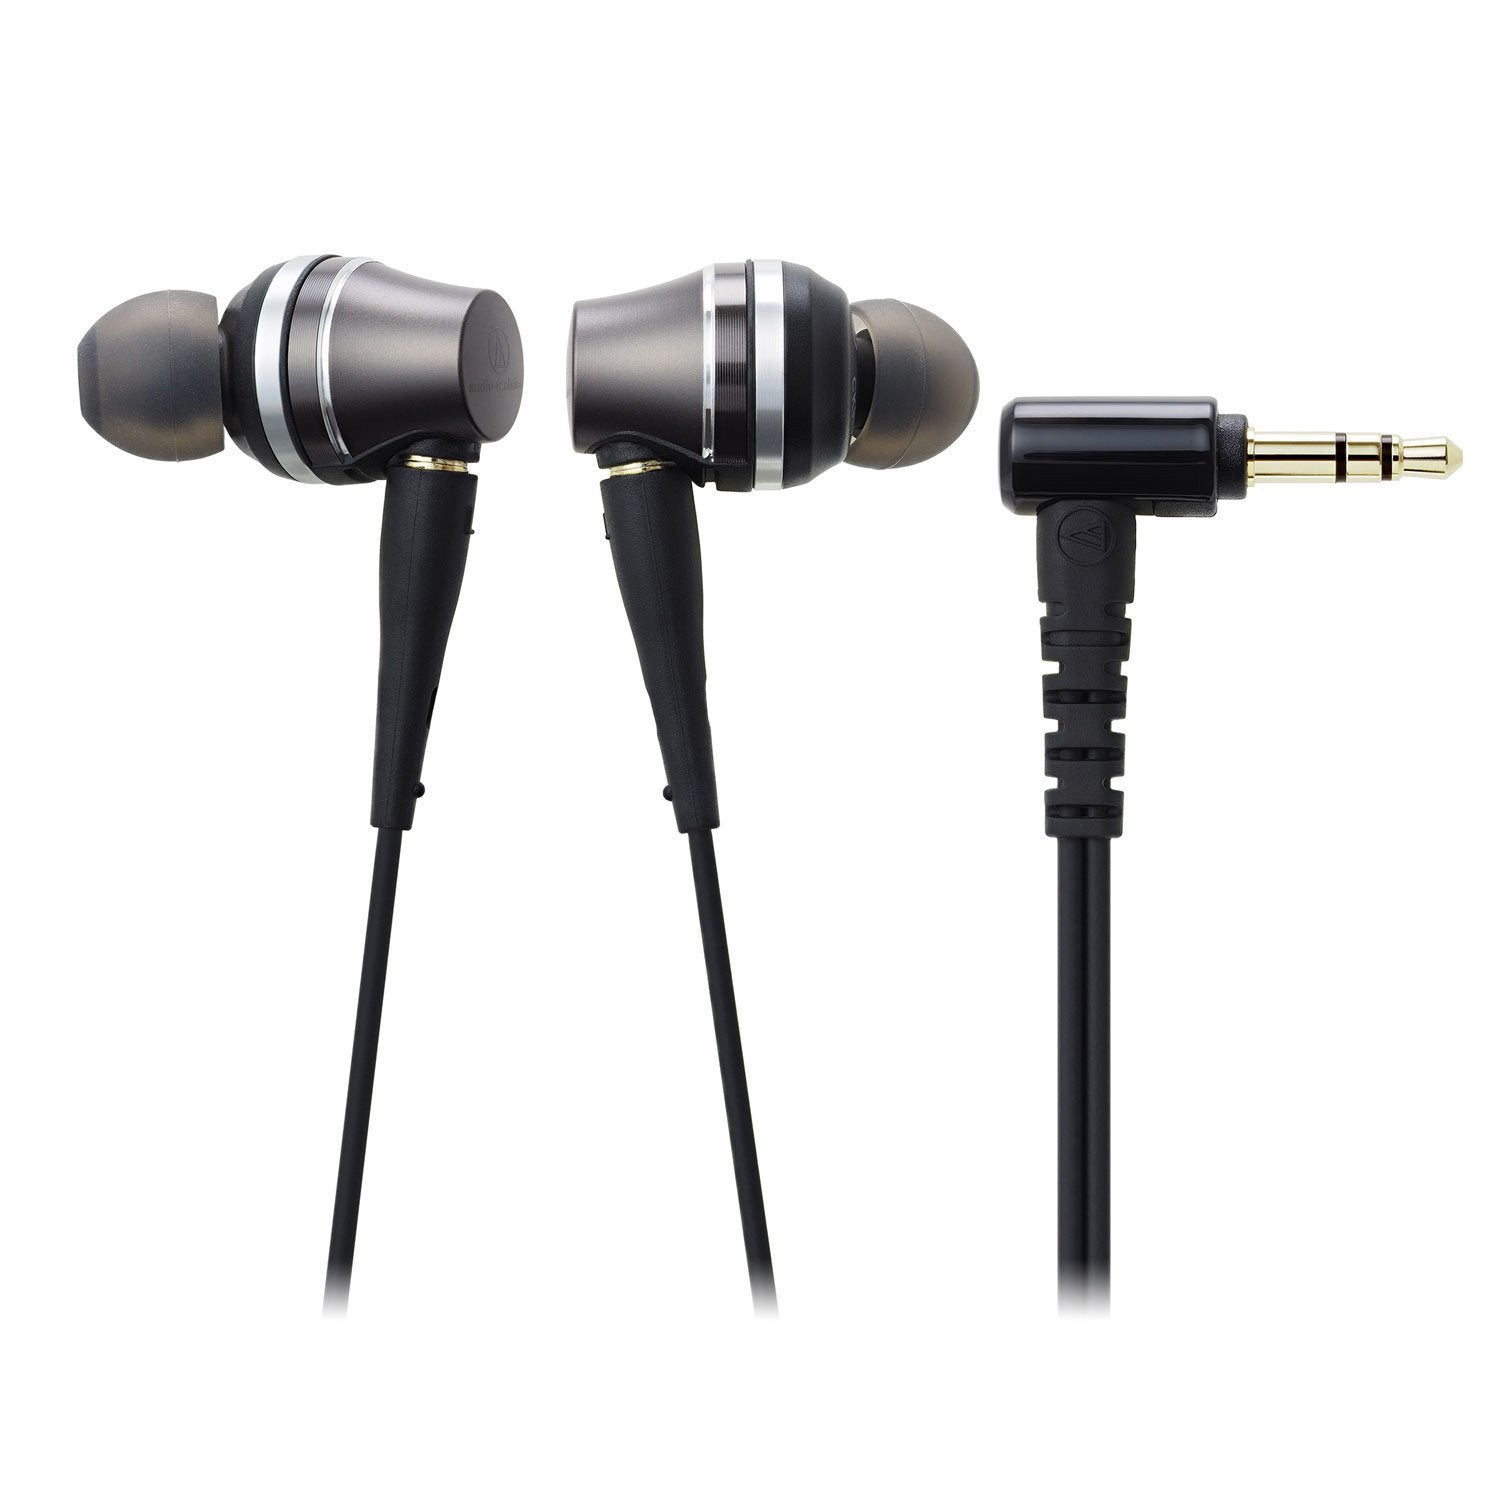 Audio-Technica ATH-CKRS90iS Sound Reality In-Ear High-Resolution Headphones with Mic & Control